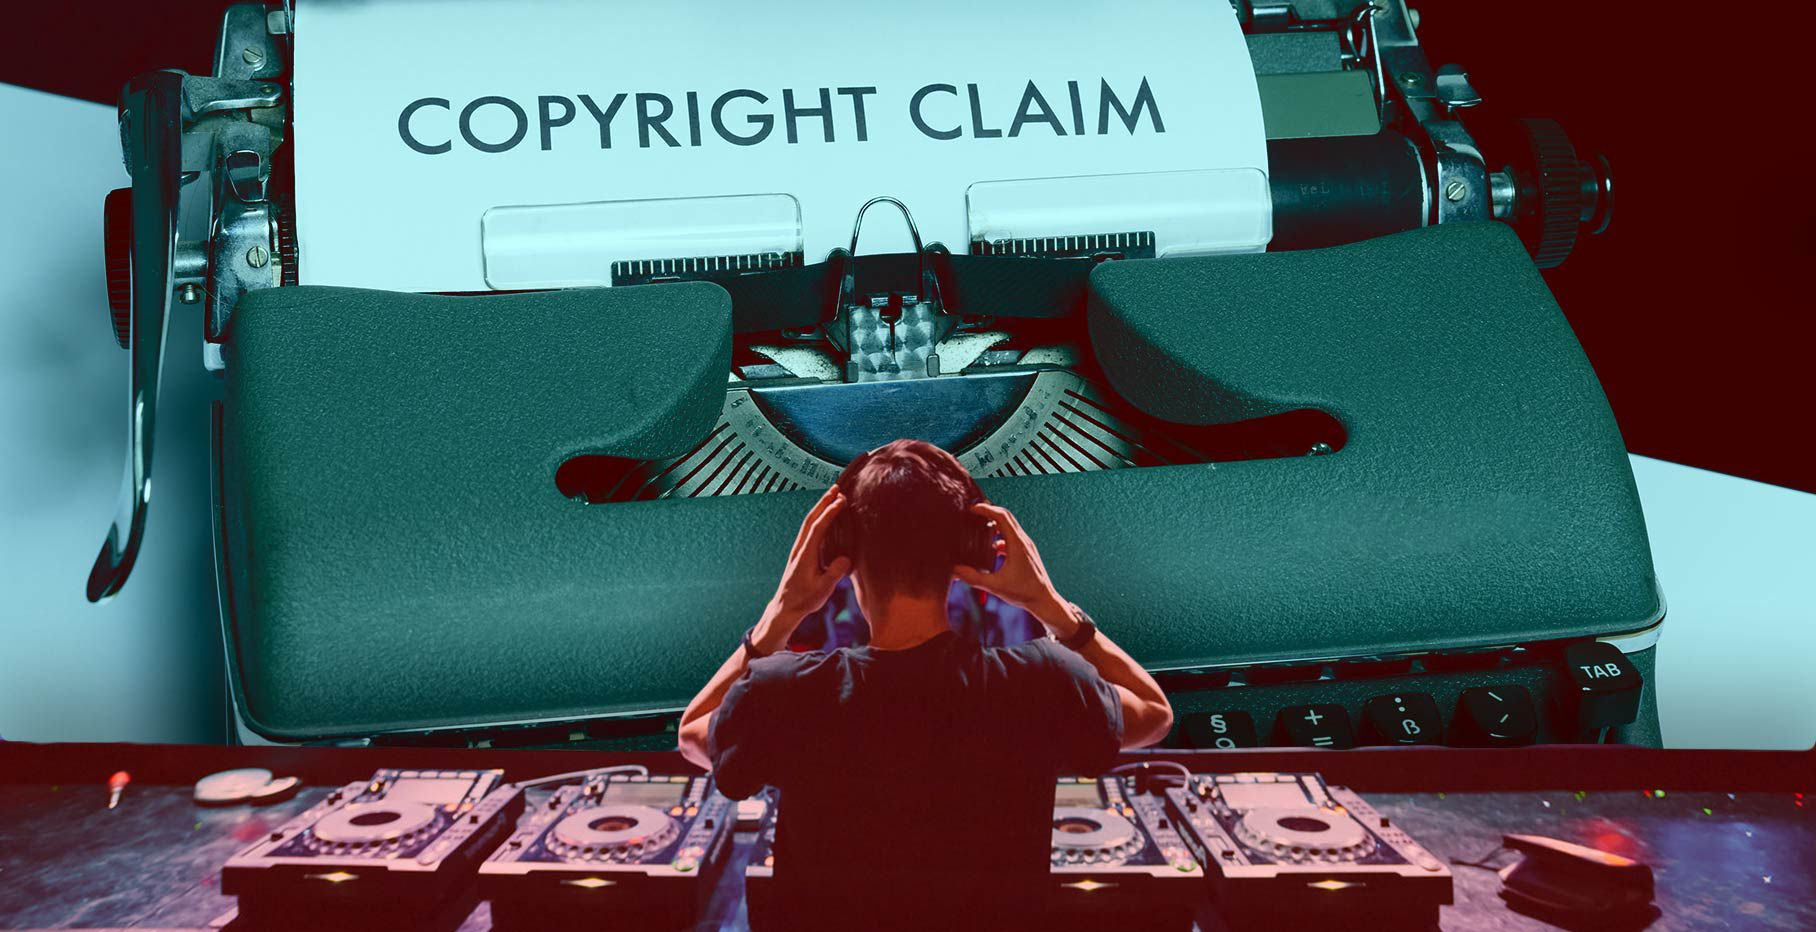 Mixcloud founder: here's what DJs need to know about music copyright